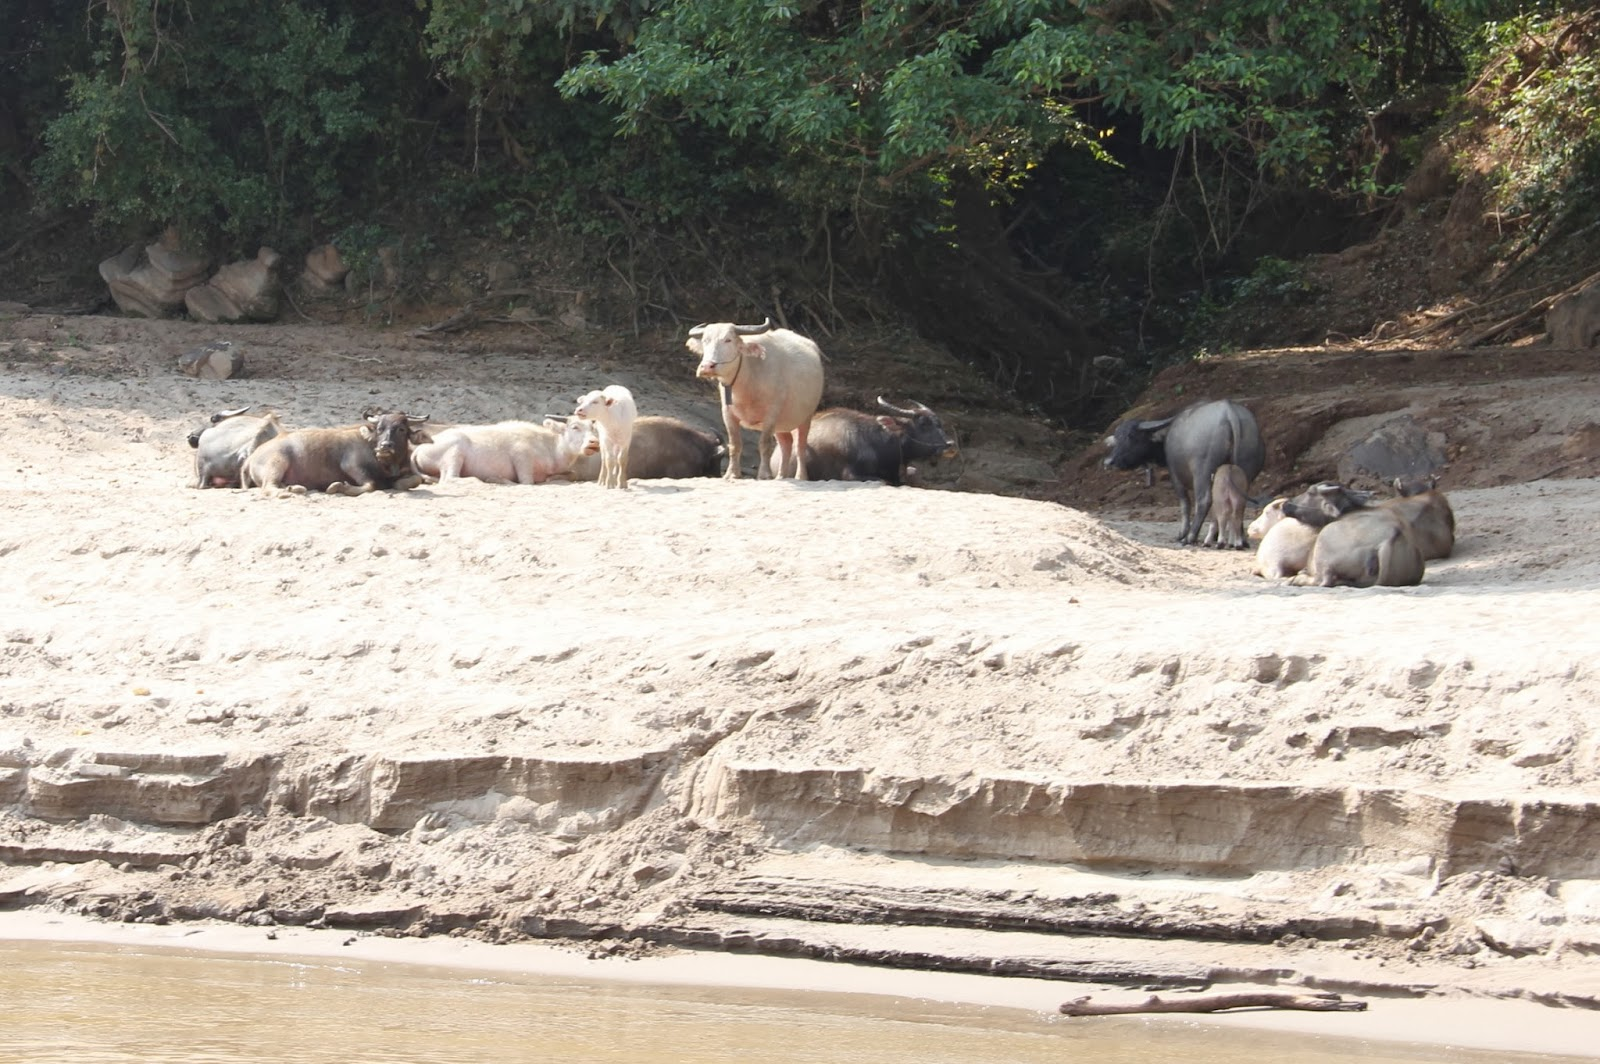 Water buffalo along the bank of the Mekong River.